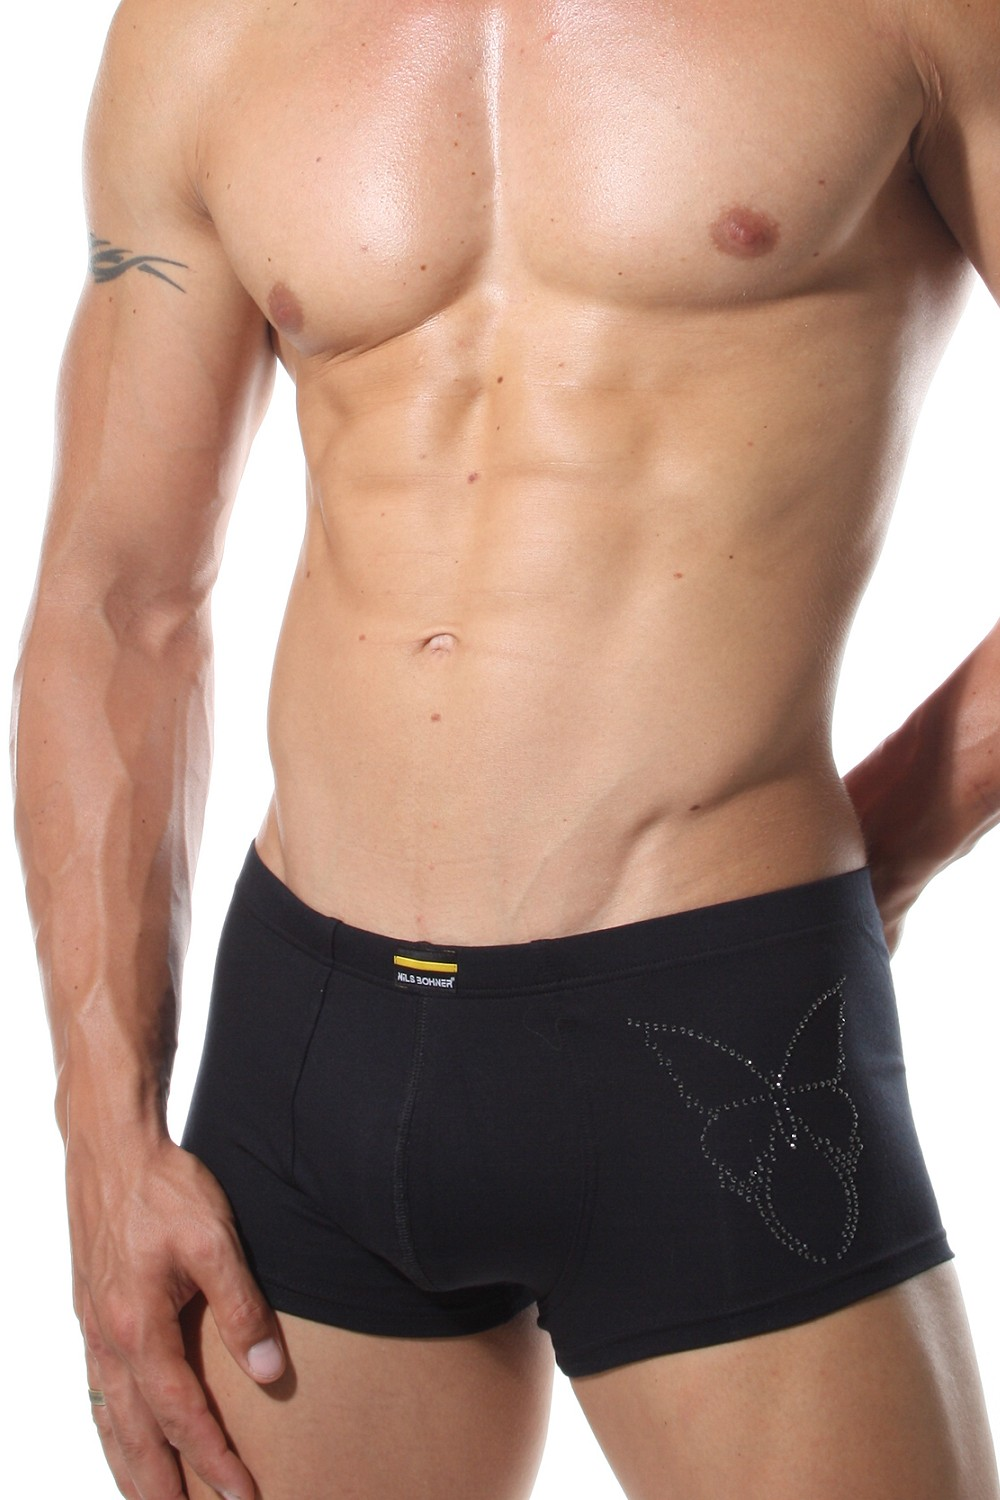 NILS BOHNER NB 514-1 fitted boxer at oboy.com